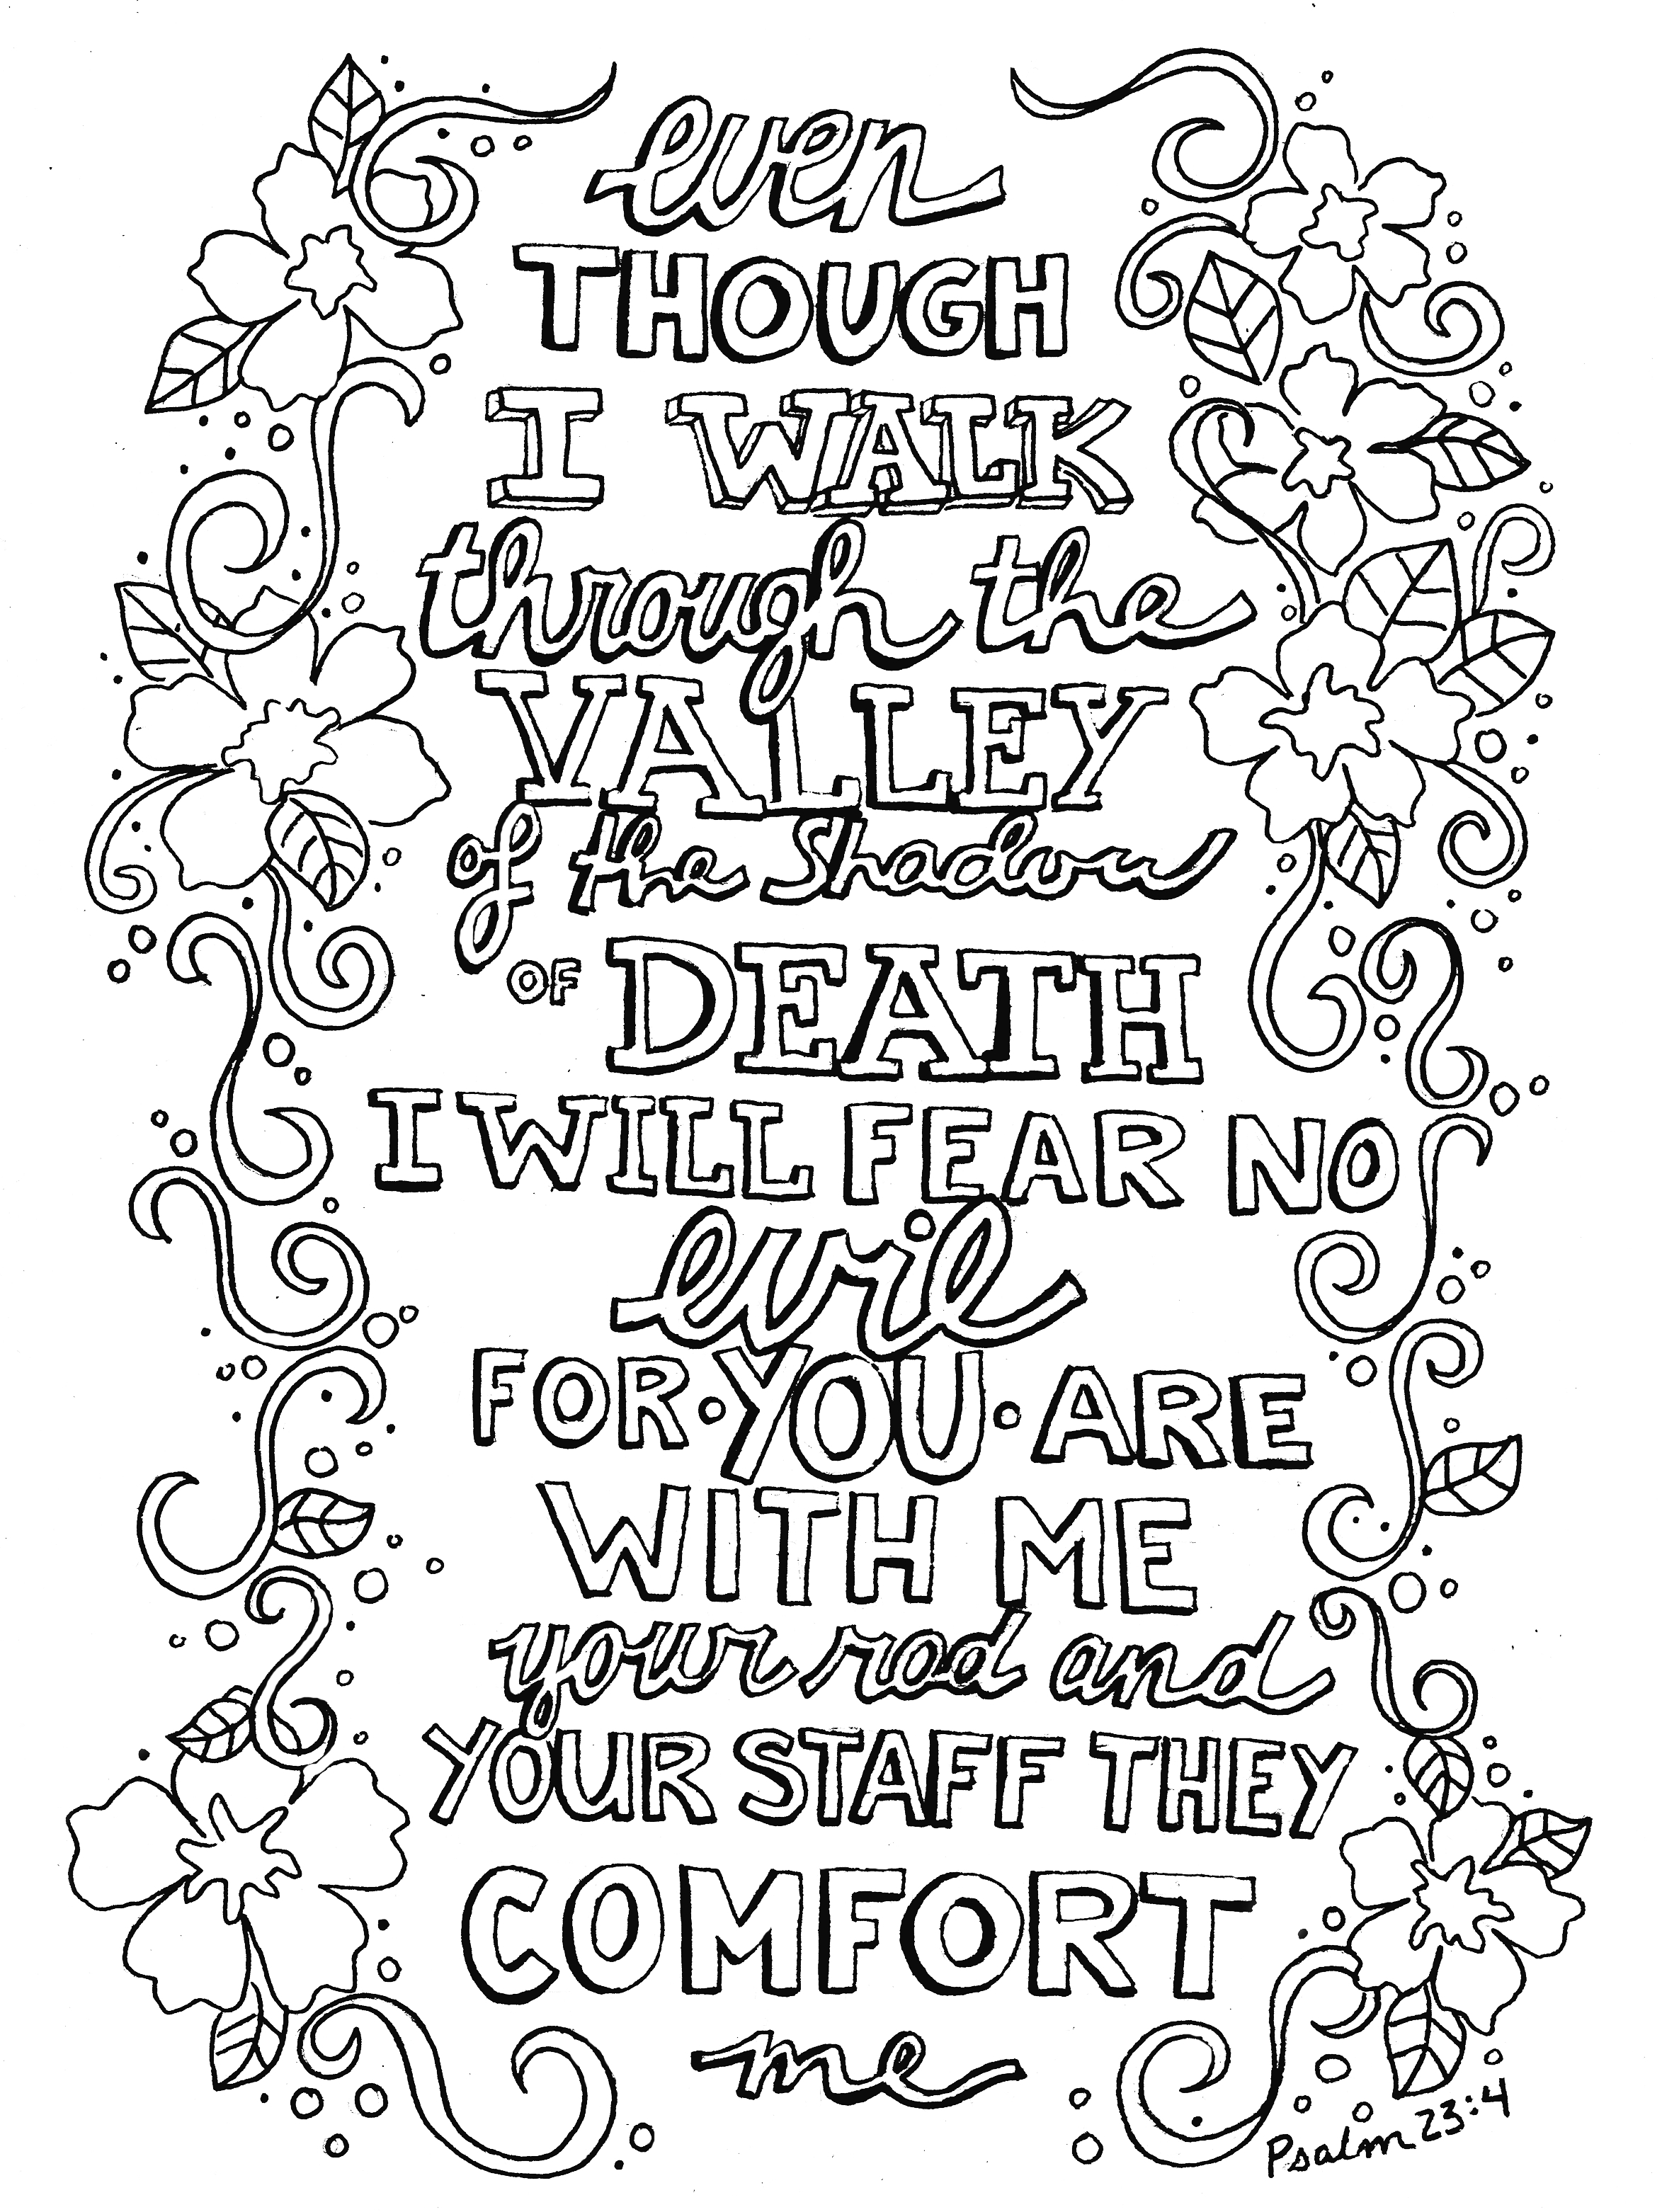 psalm 23 coloring page - q=psalms 23